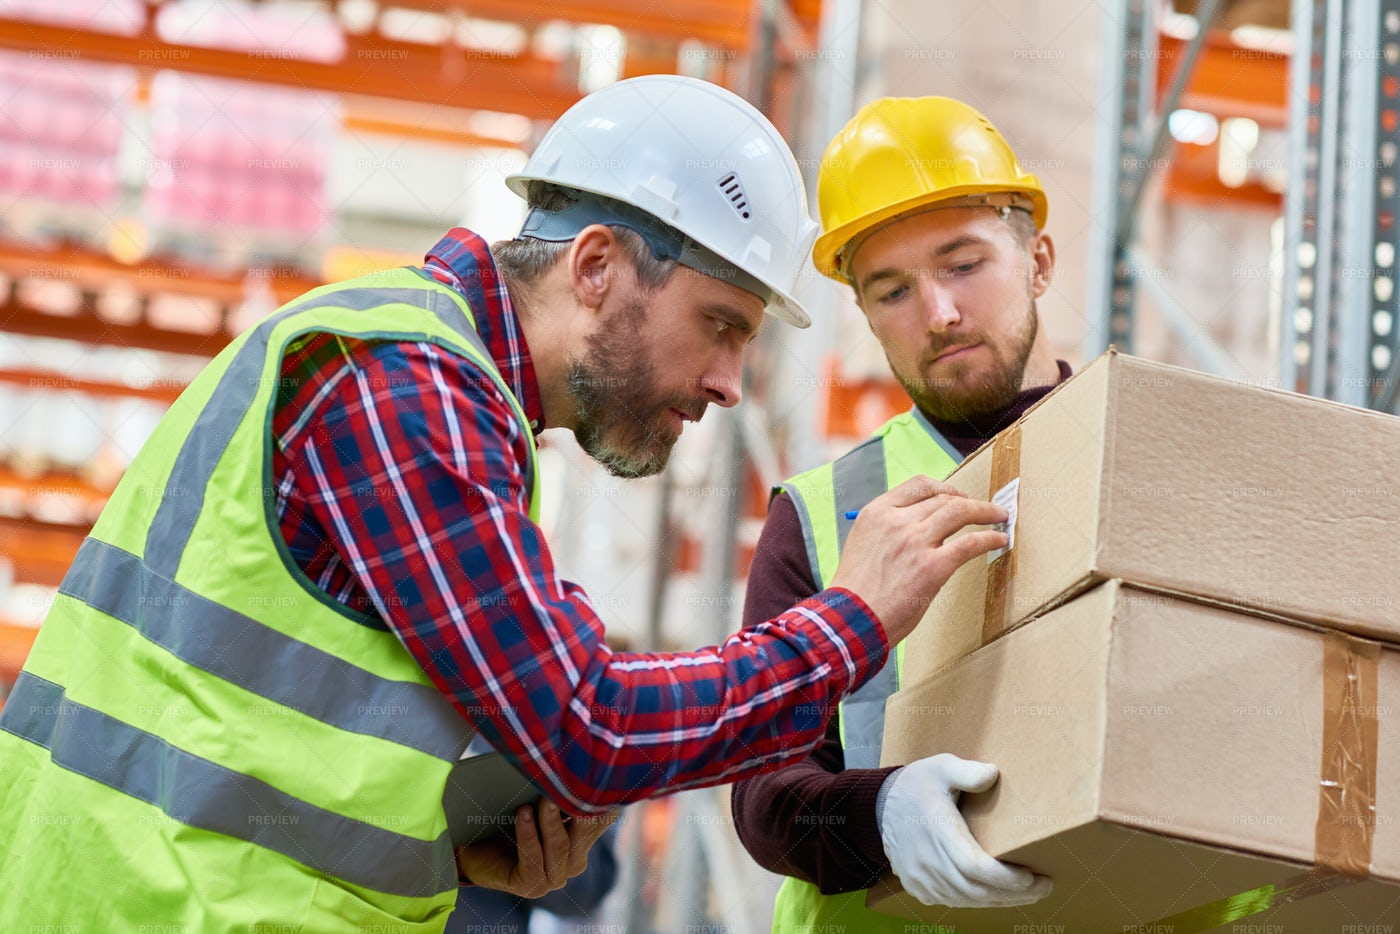 Shipping Workers In Warehouse: Stock Photos